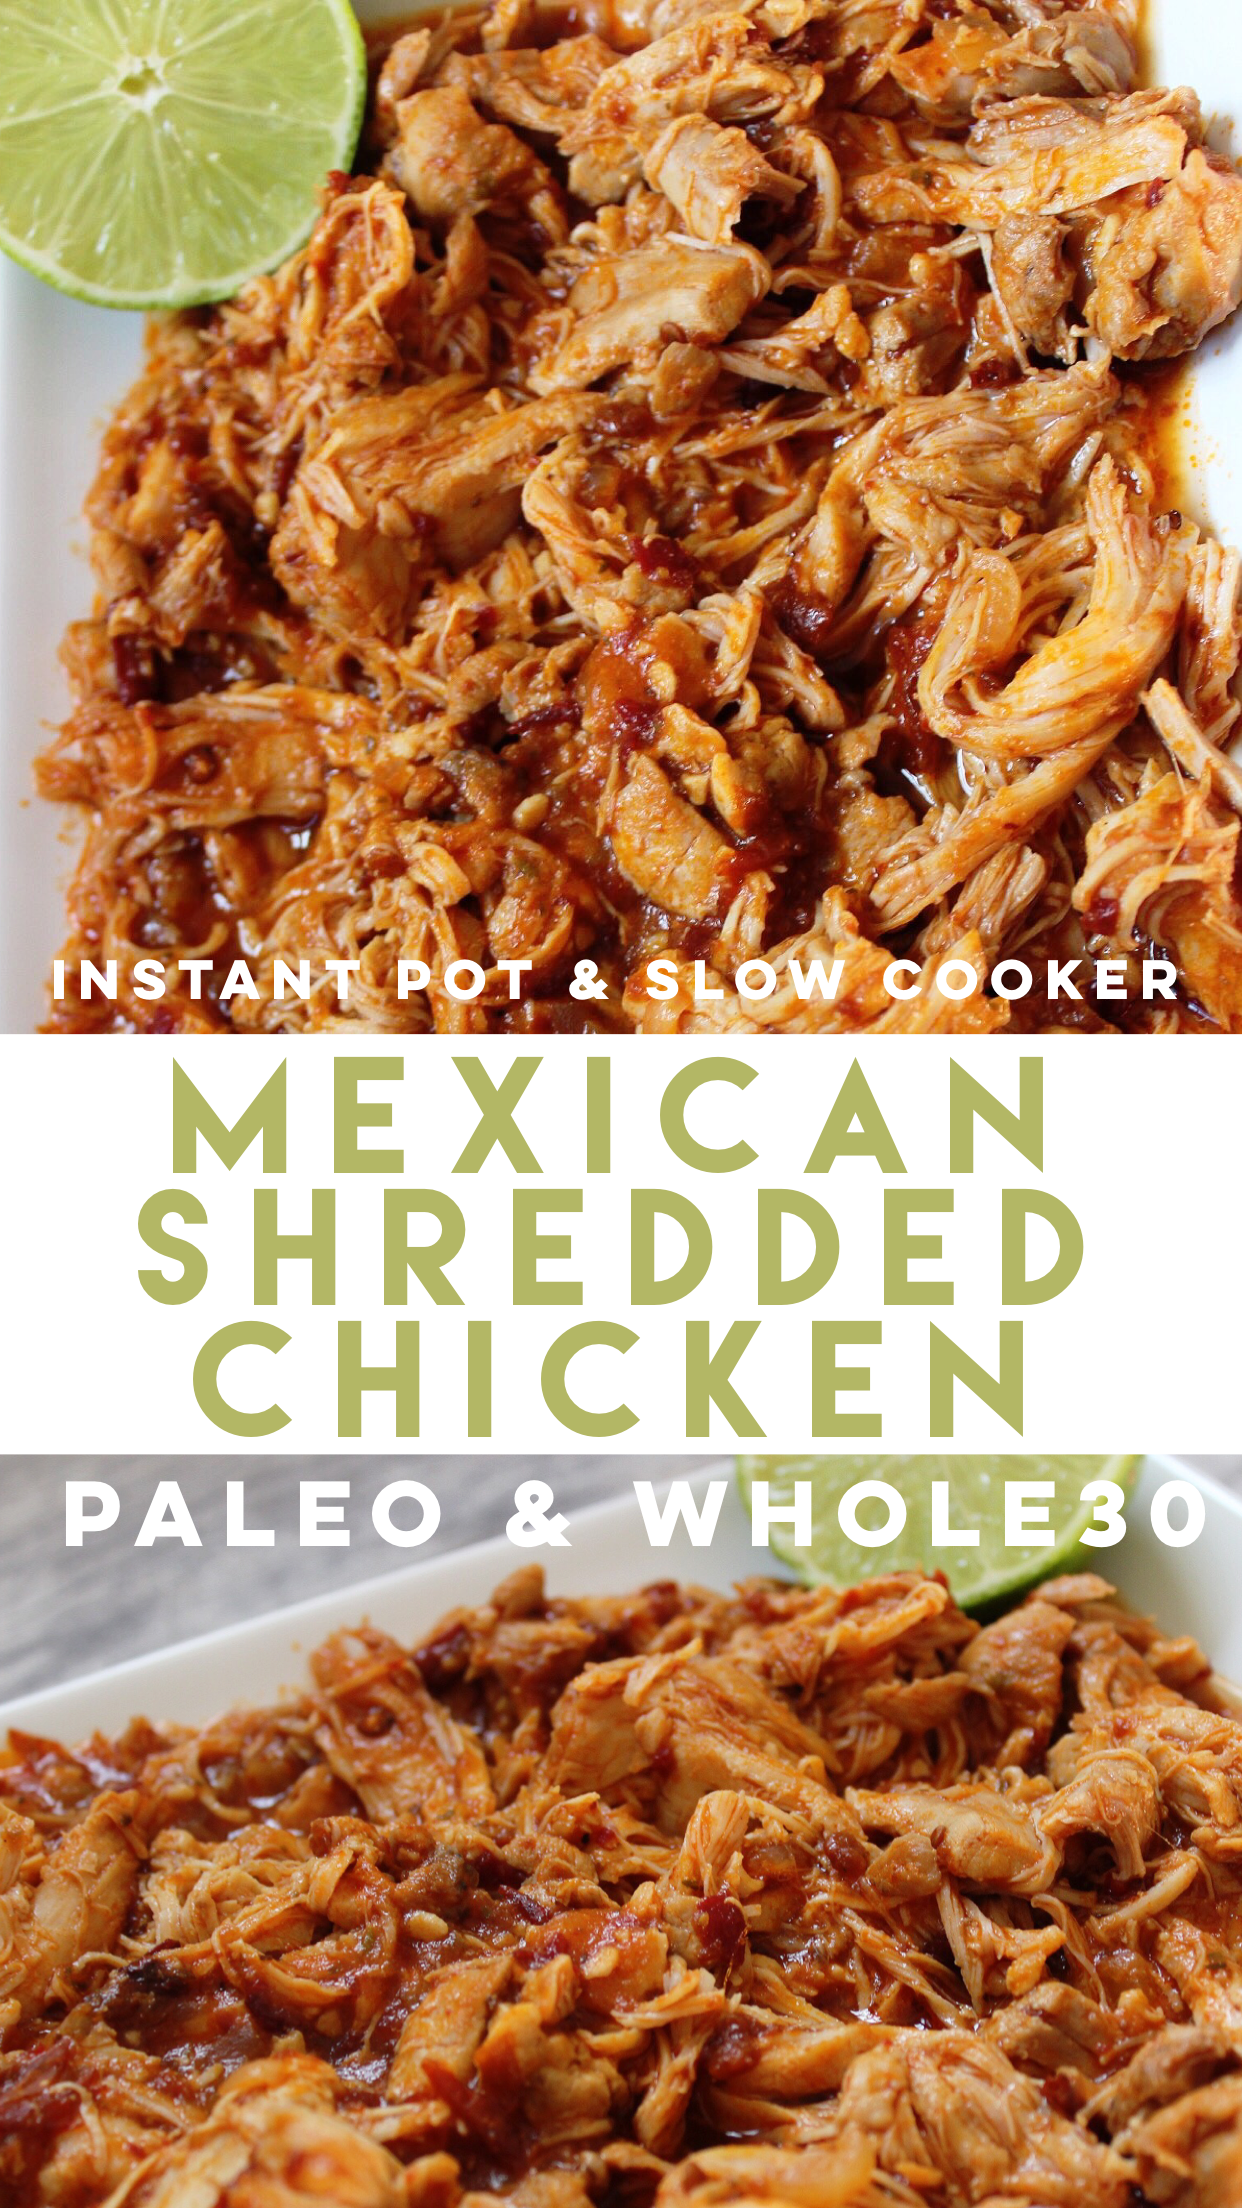 instant pot Mexican shredded chicken is a family friendly recipe that's only made with a few simple ingredients. It's perfect for a Paleo chicken dinner, or Whole30 meal prep! #paleochicken #paleoinstantpot #whole30instantpot #whole30chicken #lowcarbchicken via @paleobailey